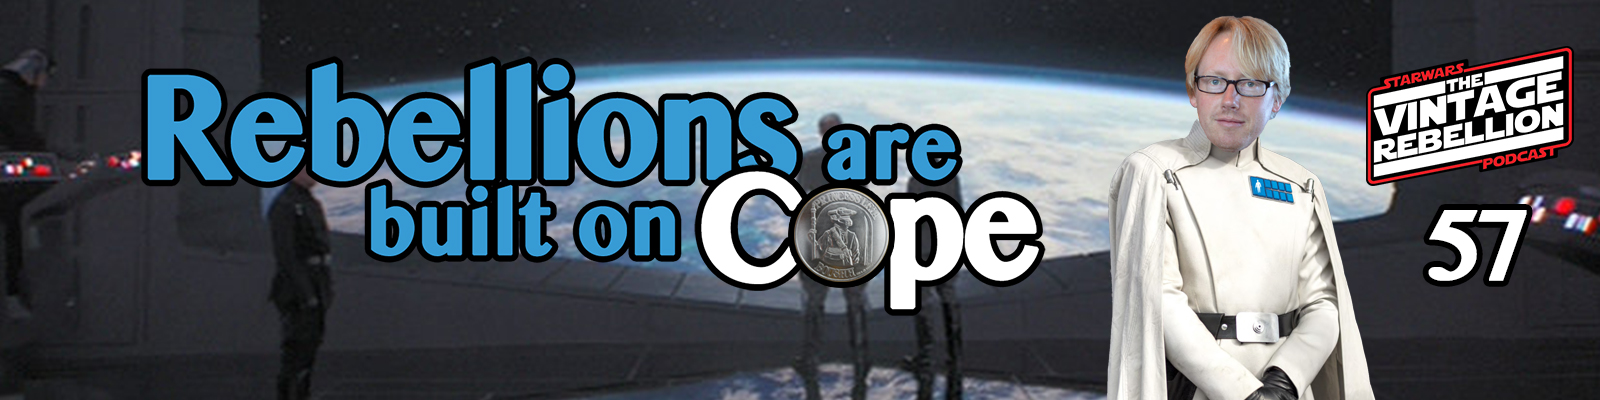 Episode 57 : Rebellions Are Built On Cope